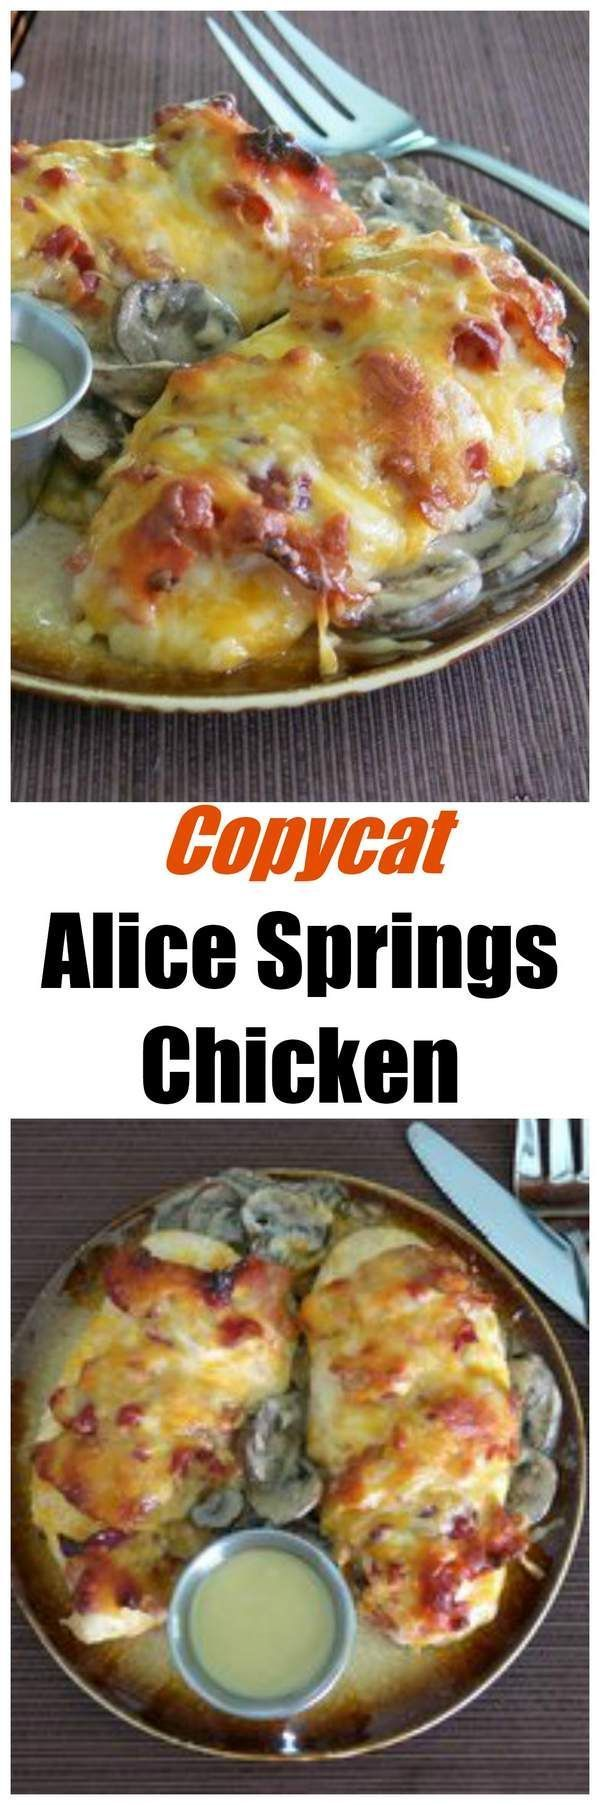 Copycat Alice Springs Chicken Recipe like Outback Steakhouse version. Easy recipe that you bake in the oven. Gluten-free